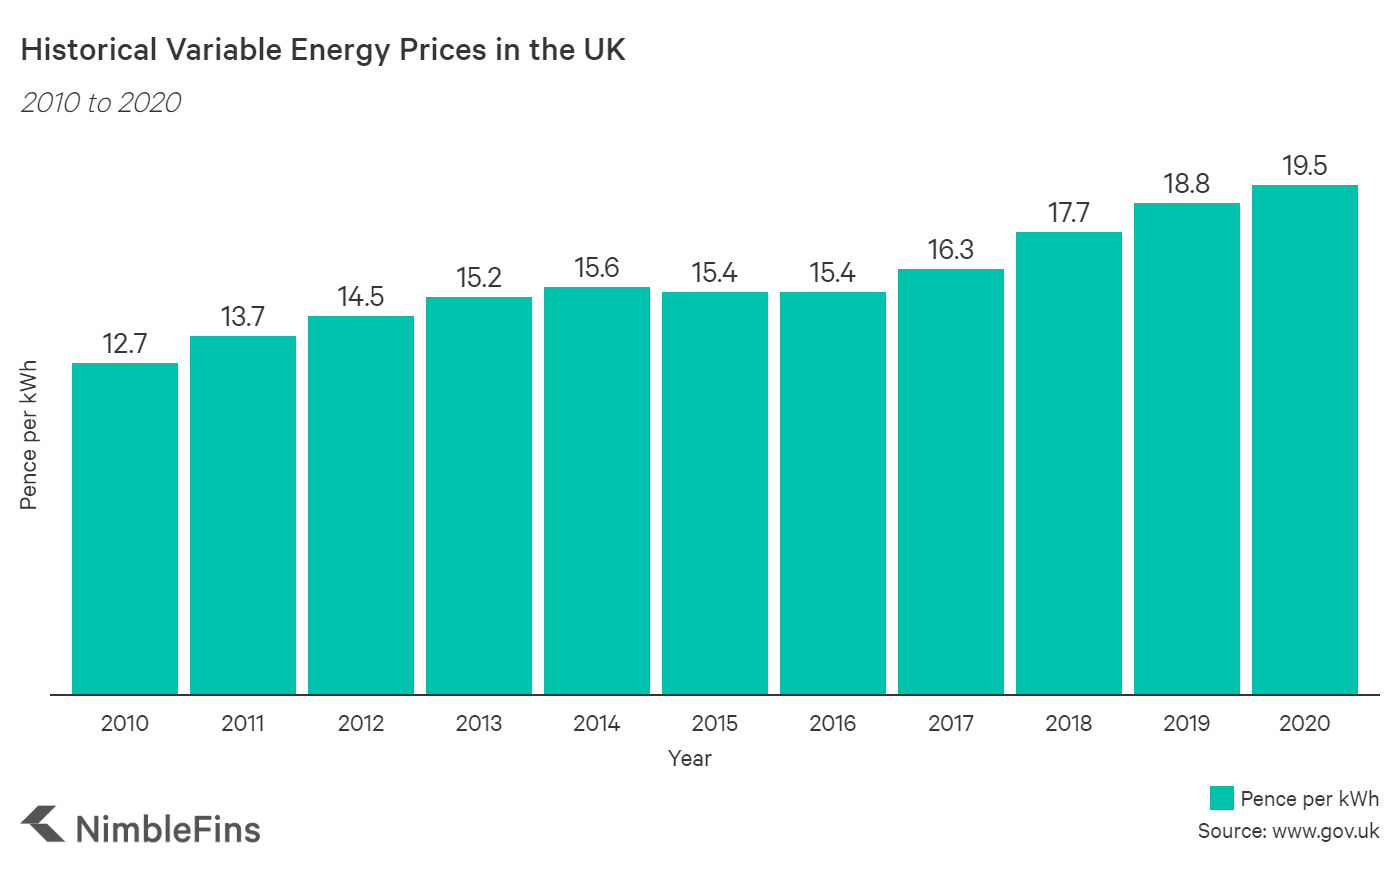 chart showing historical energy prices in the UK, pence per kWh